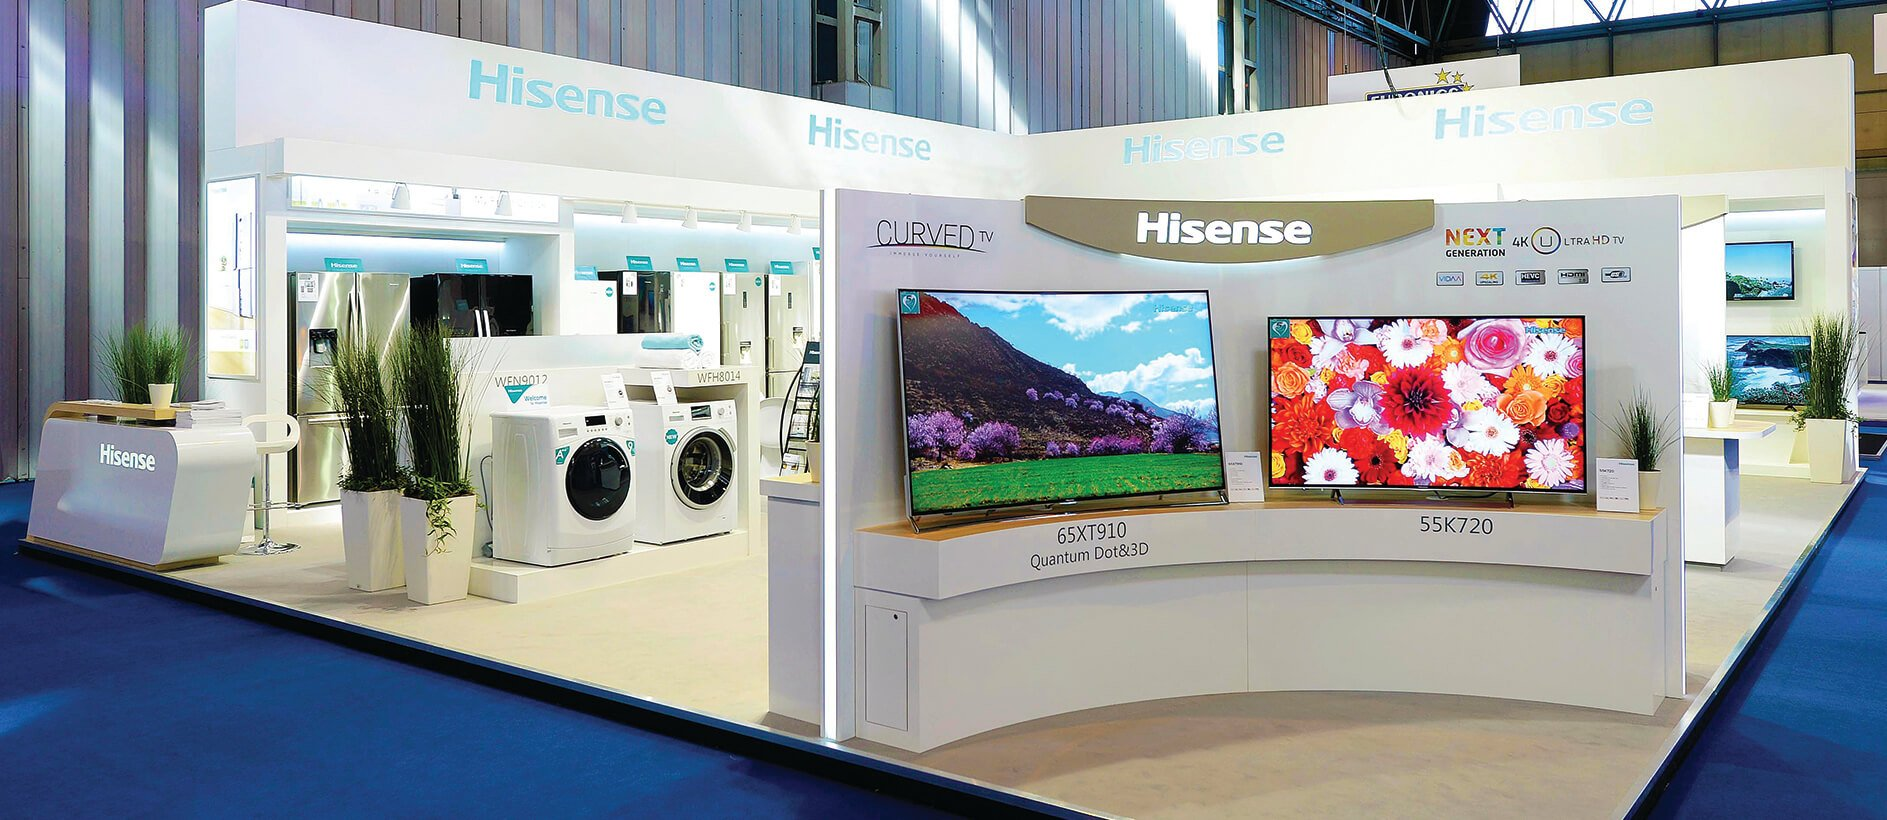 Hisense products displayed professionally at an exhibition